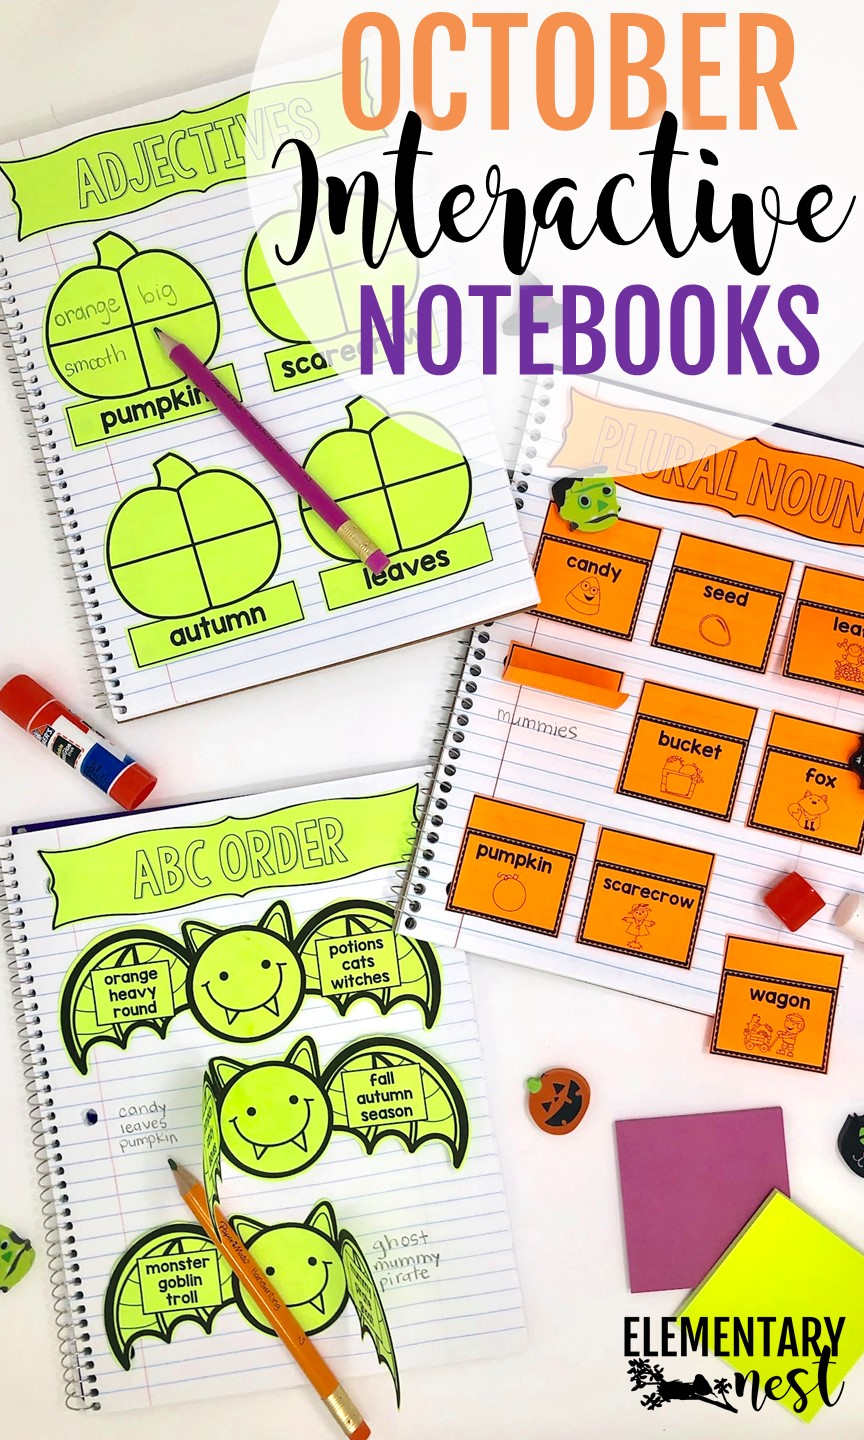 October Interactive Notebooks for ELA and math review activities.